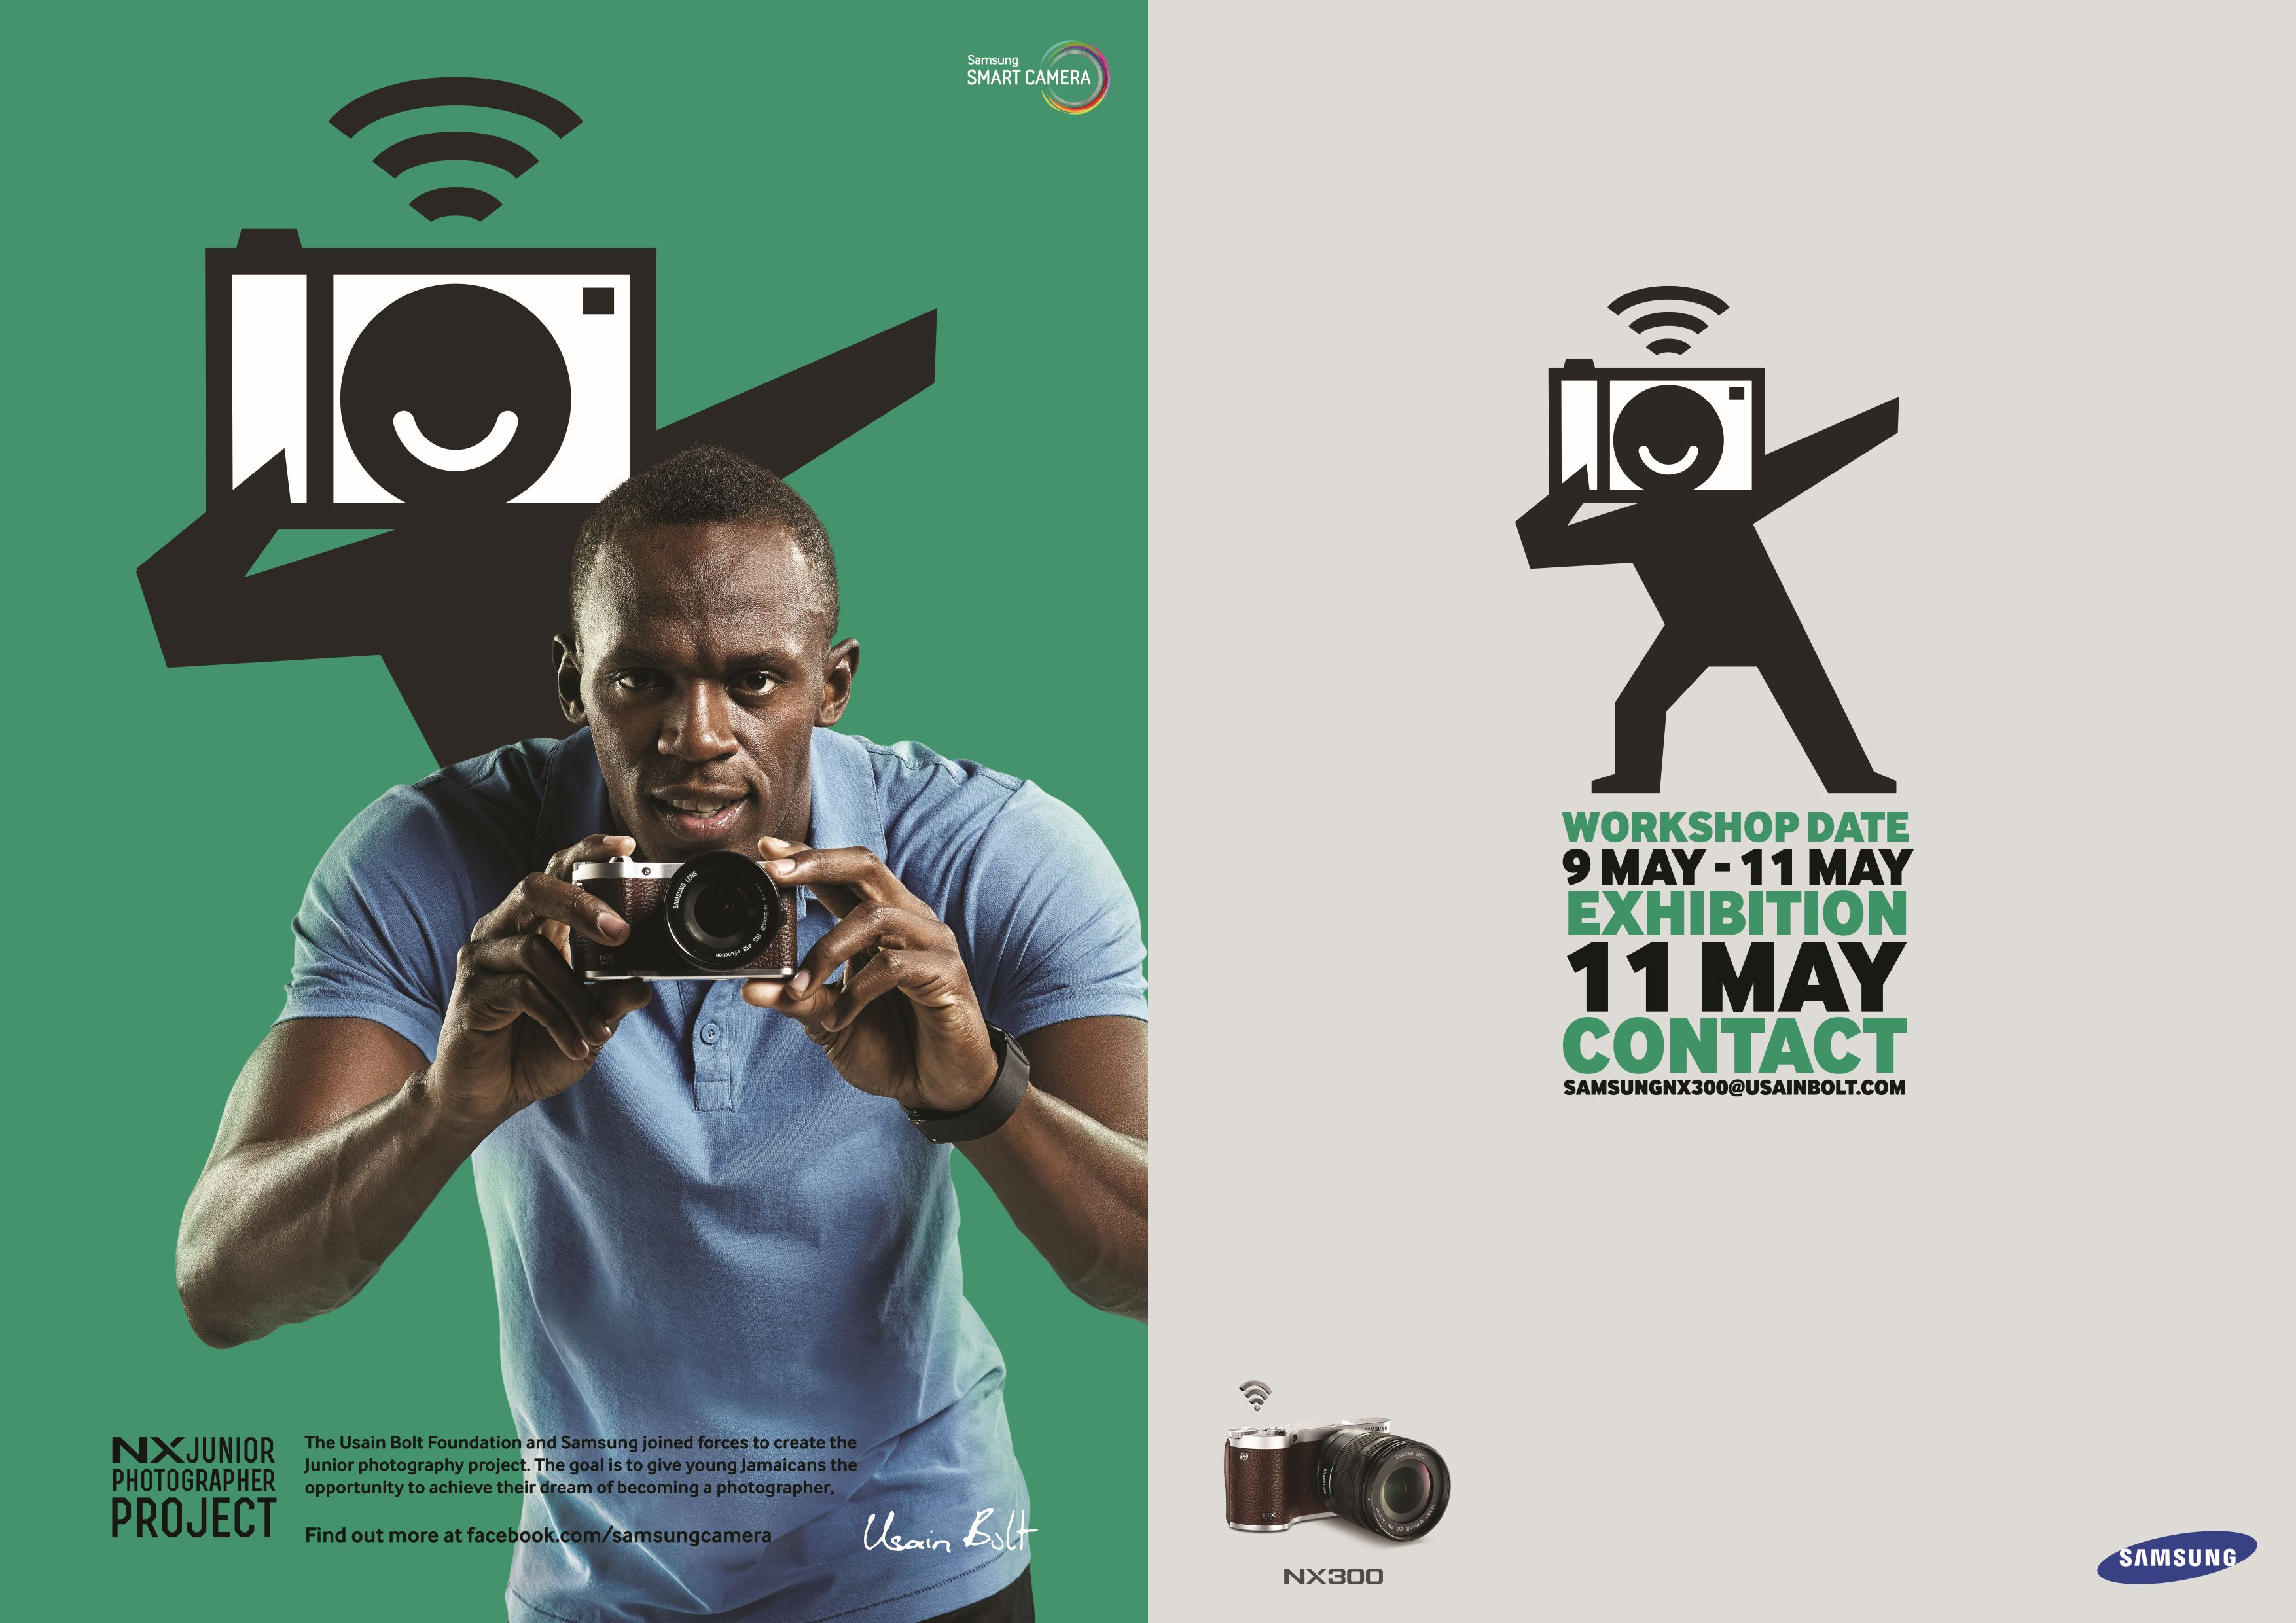 Samsung Camera workshop in Jamaica